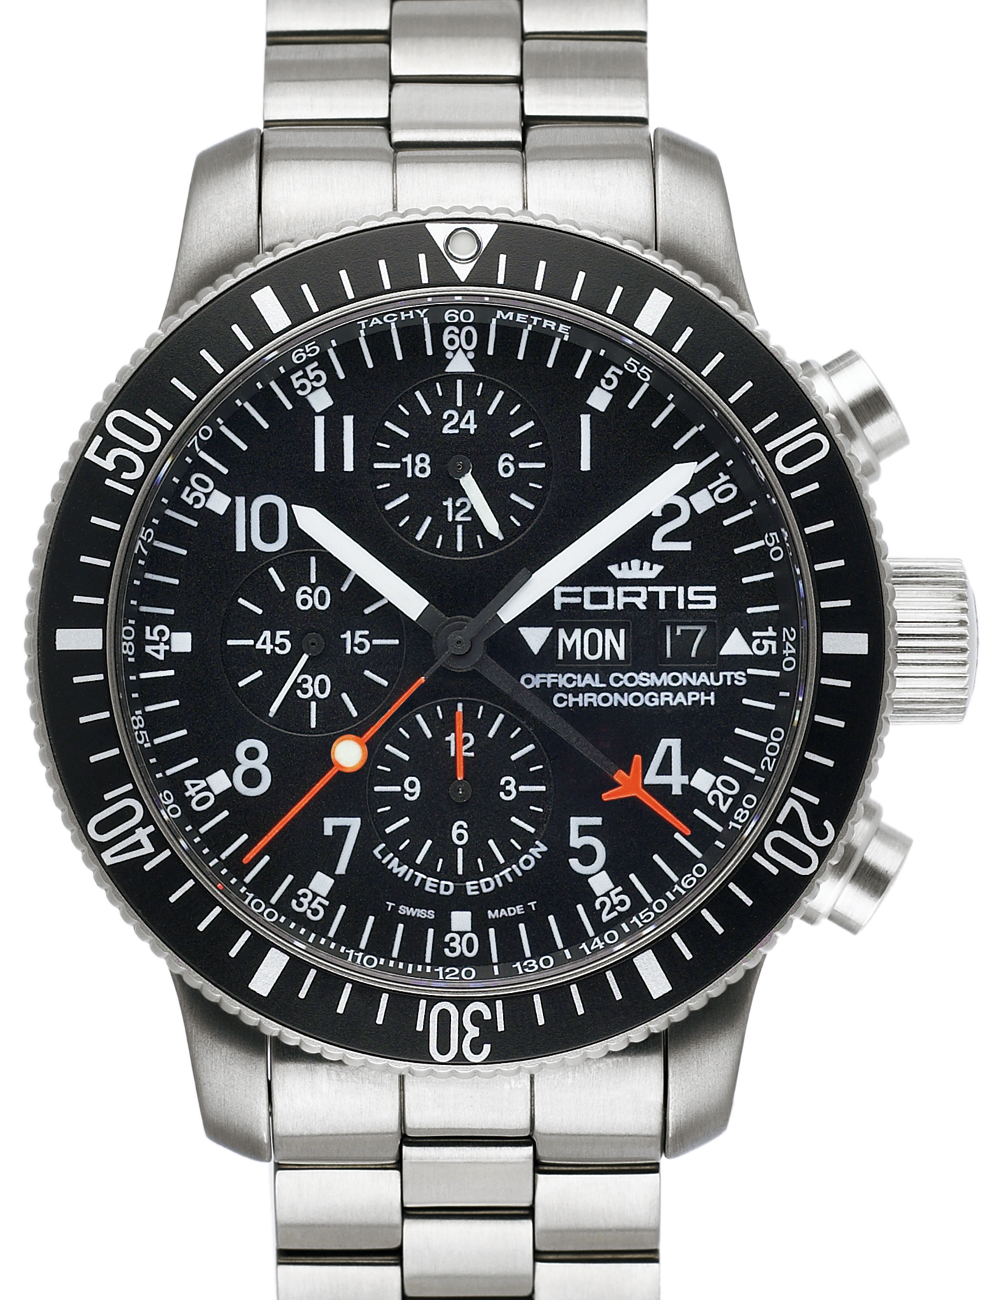 Titan Chrono Watches